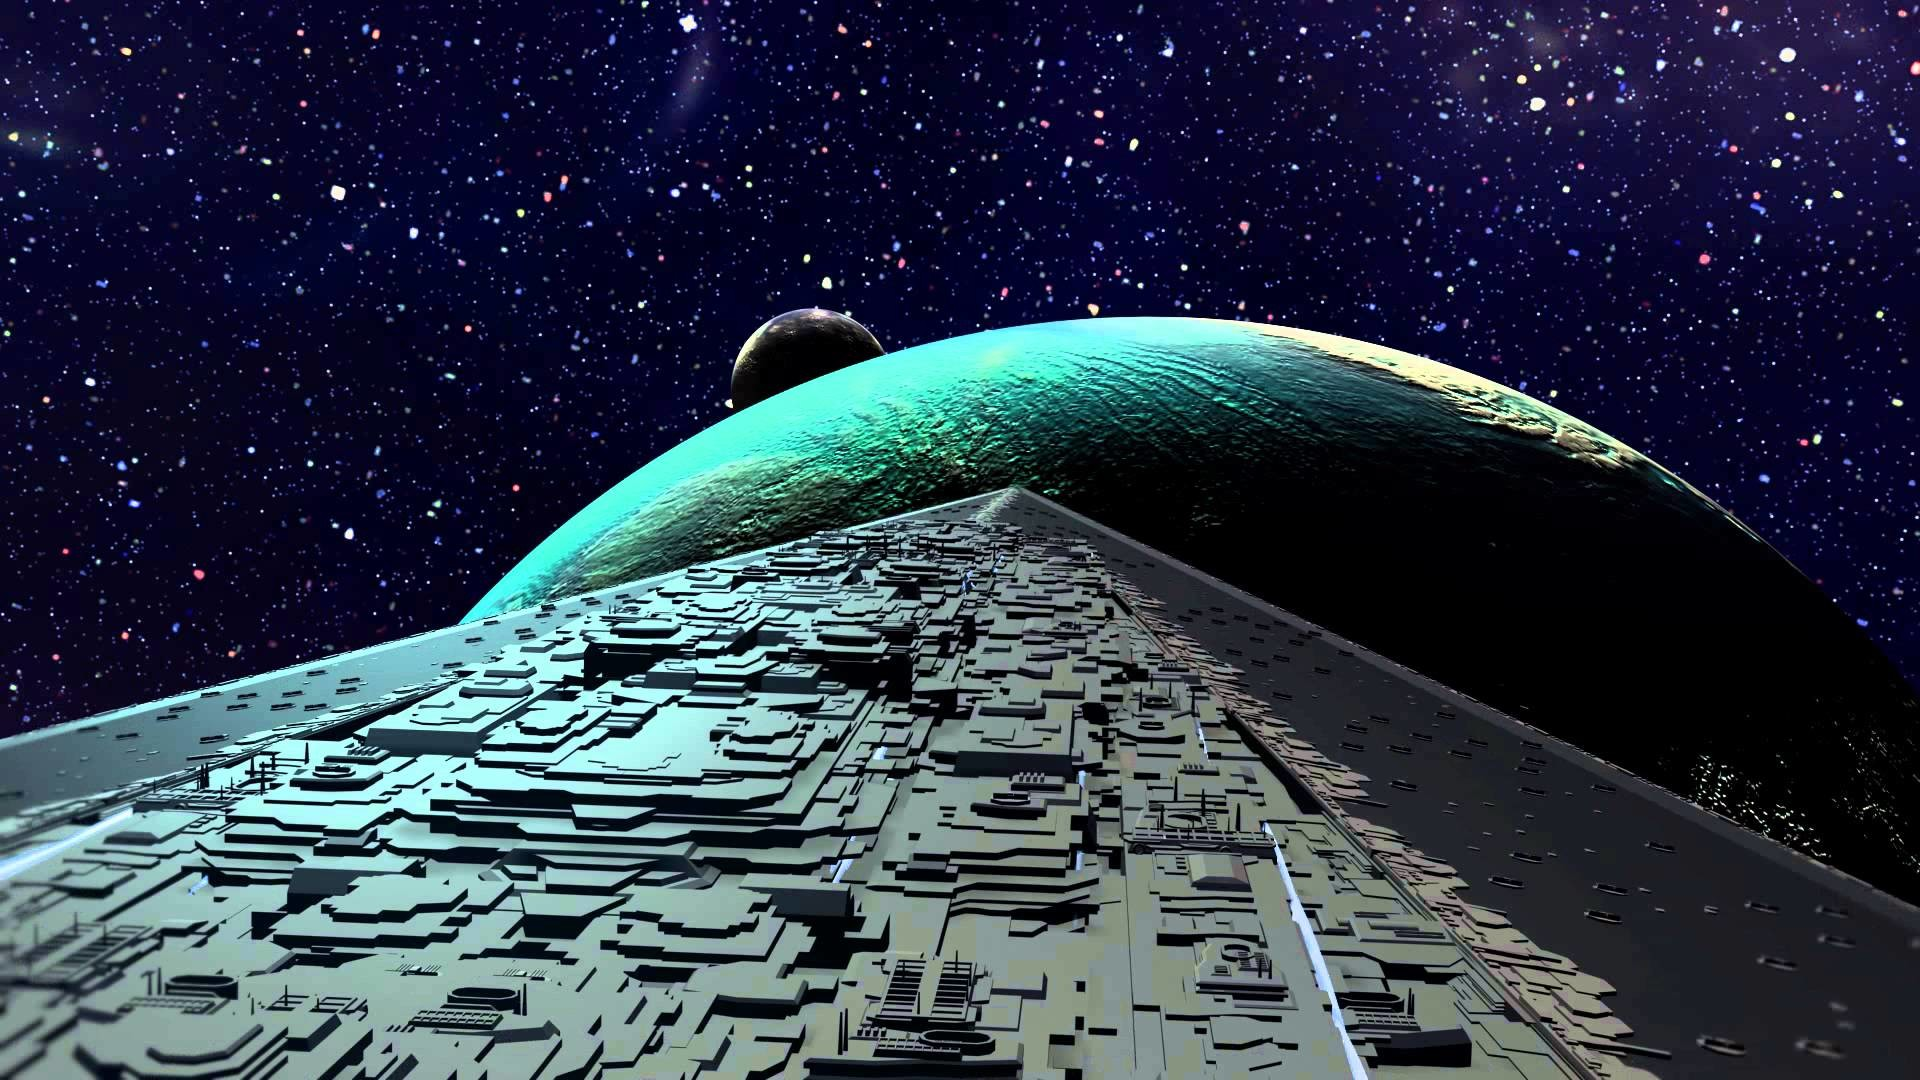 [3DS Max] Super Star Destroyer : Executor – YouTube